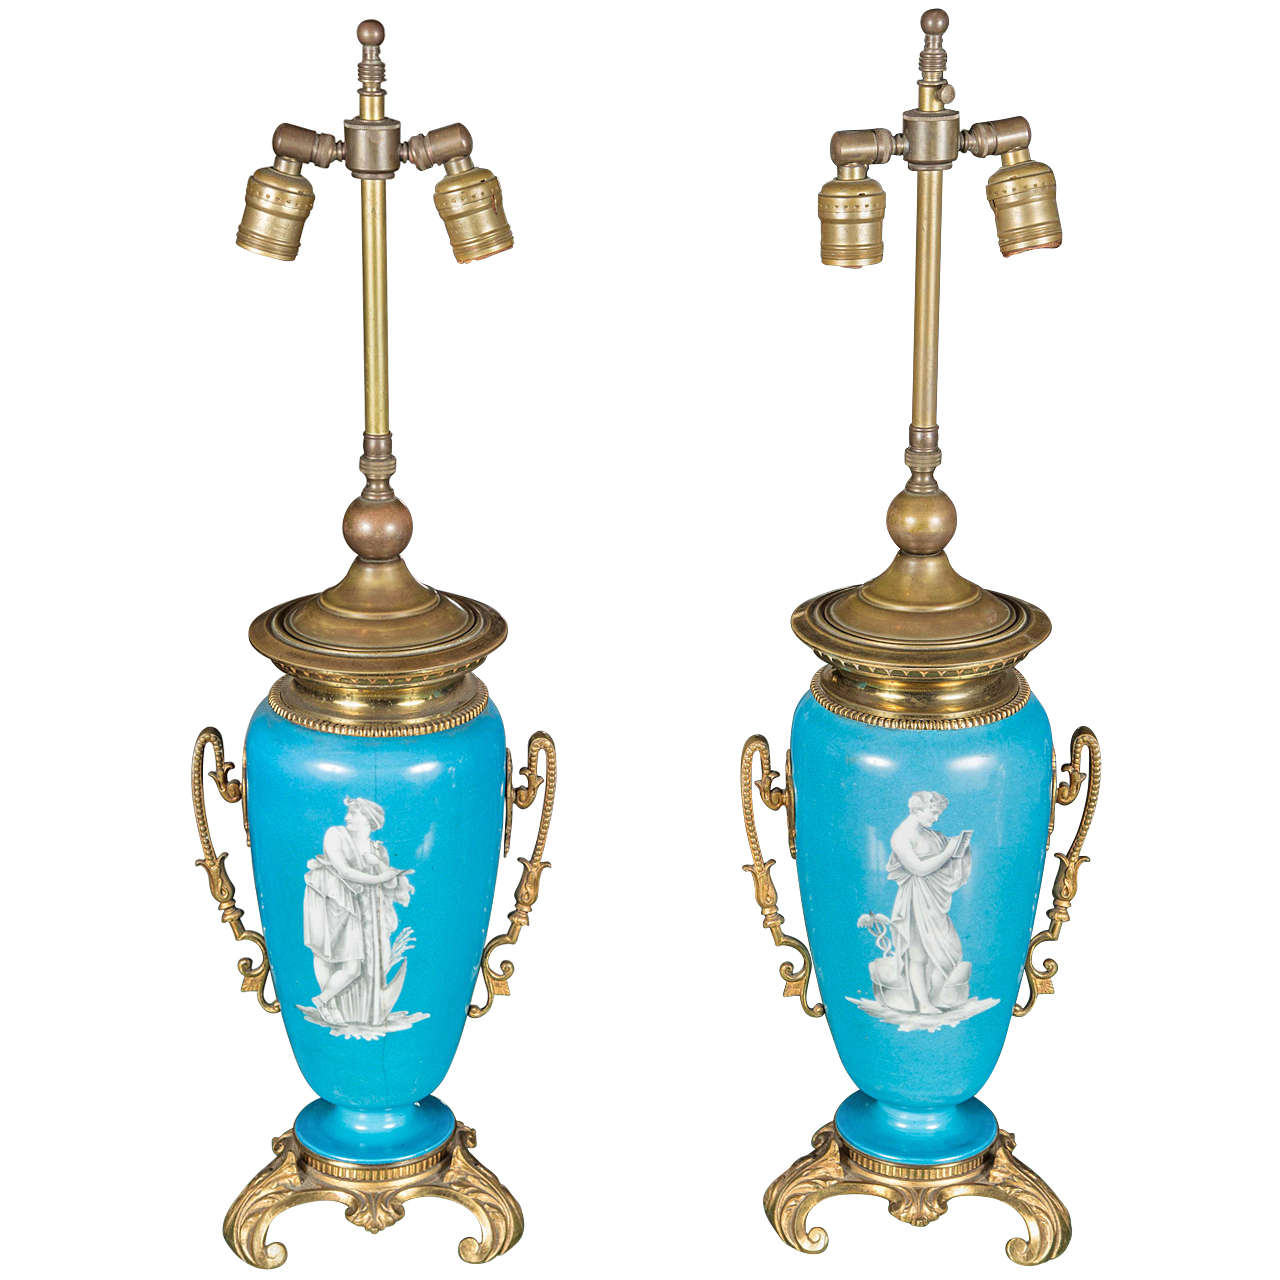 Pair of Turquoise Vase Lamps with Bronze Accents